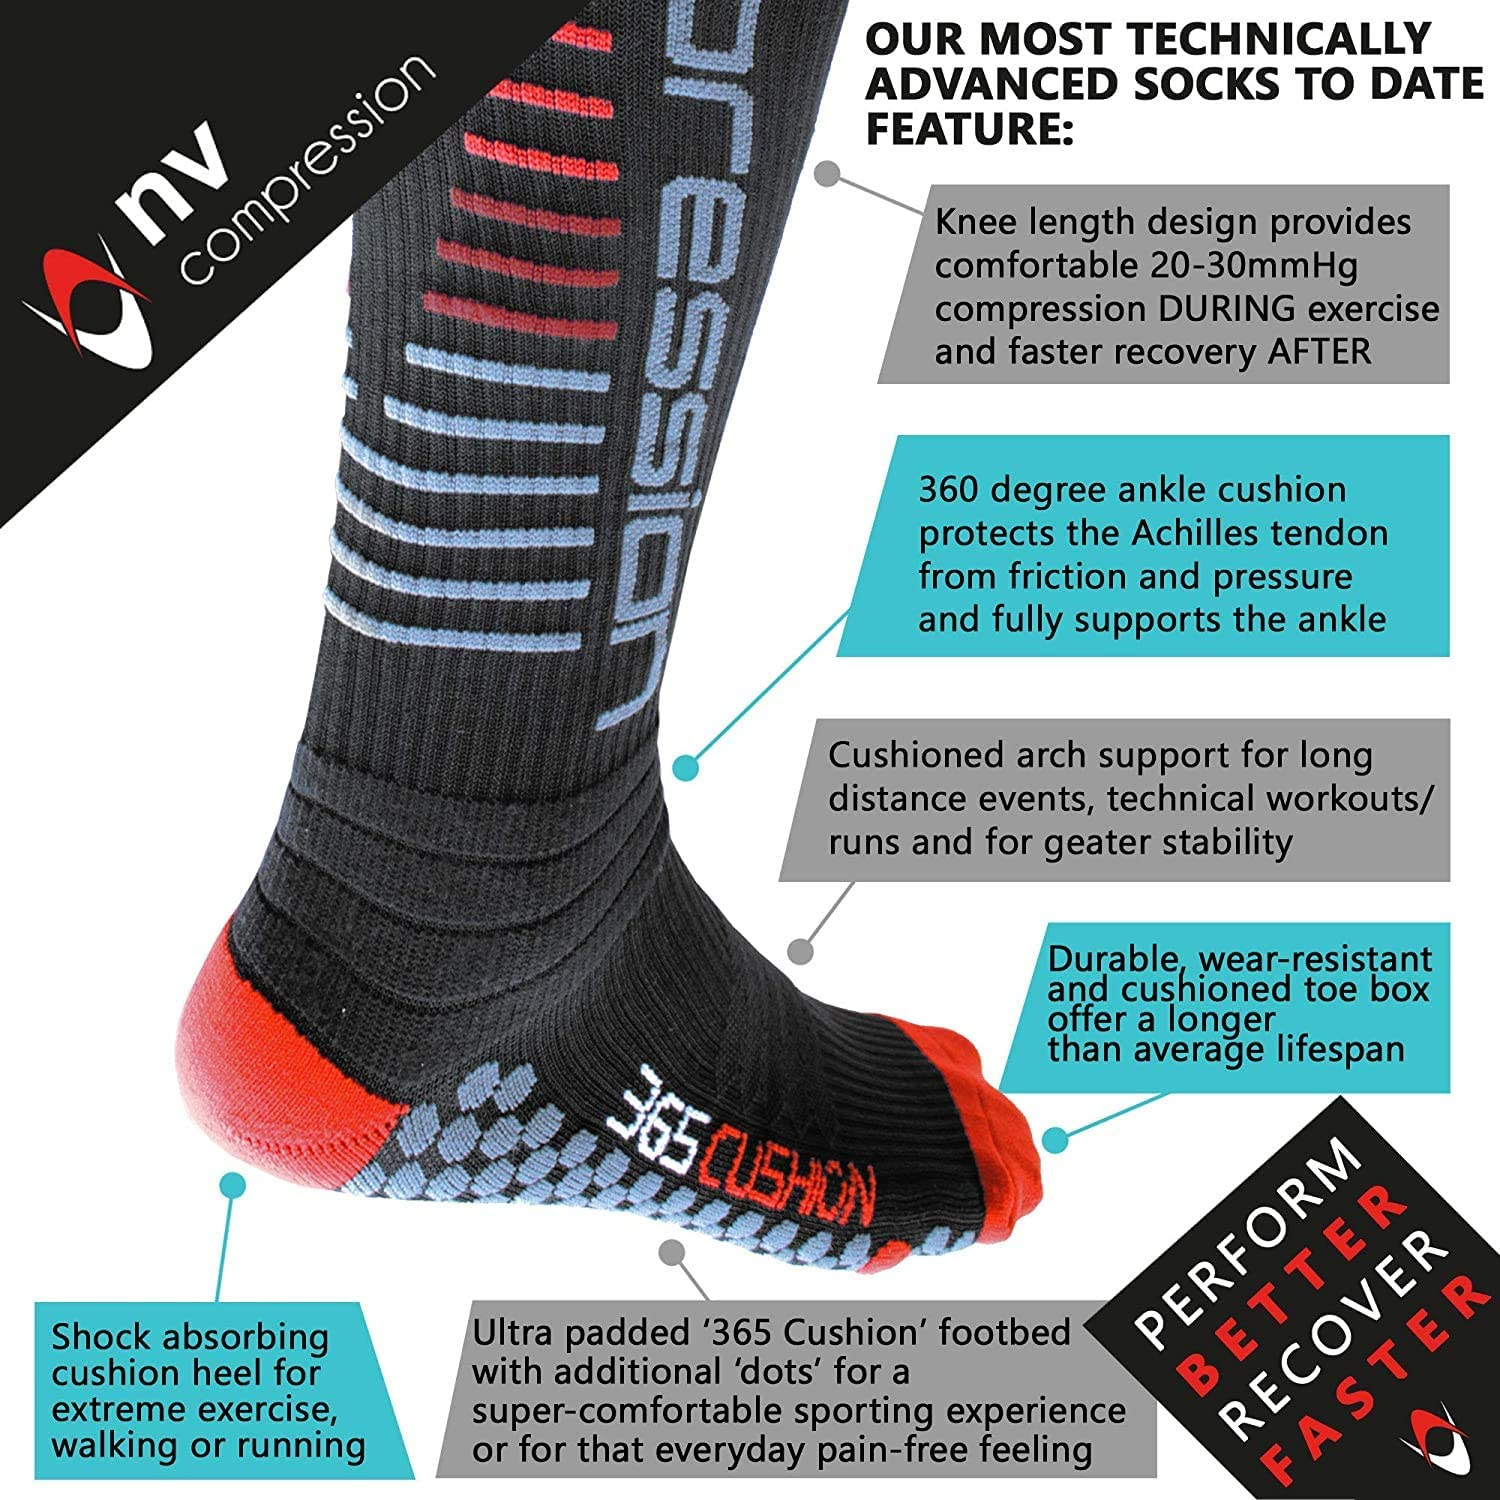 Work Flight Cycling NV Compression 365 Cushion Calze a Compressione Running Cushioned Compression Socks Soccer, Pair Nero 20-30mmHg for Sports Recovery